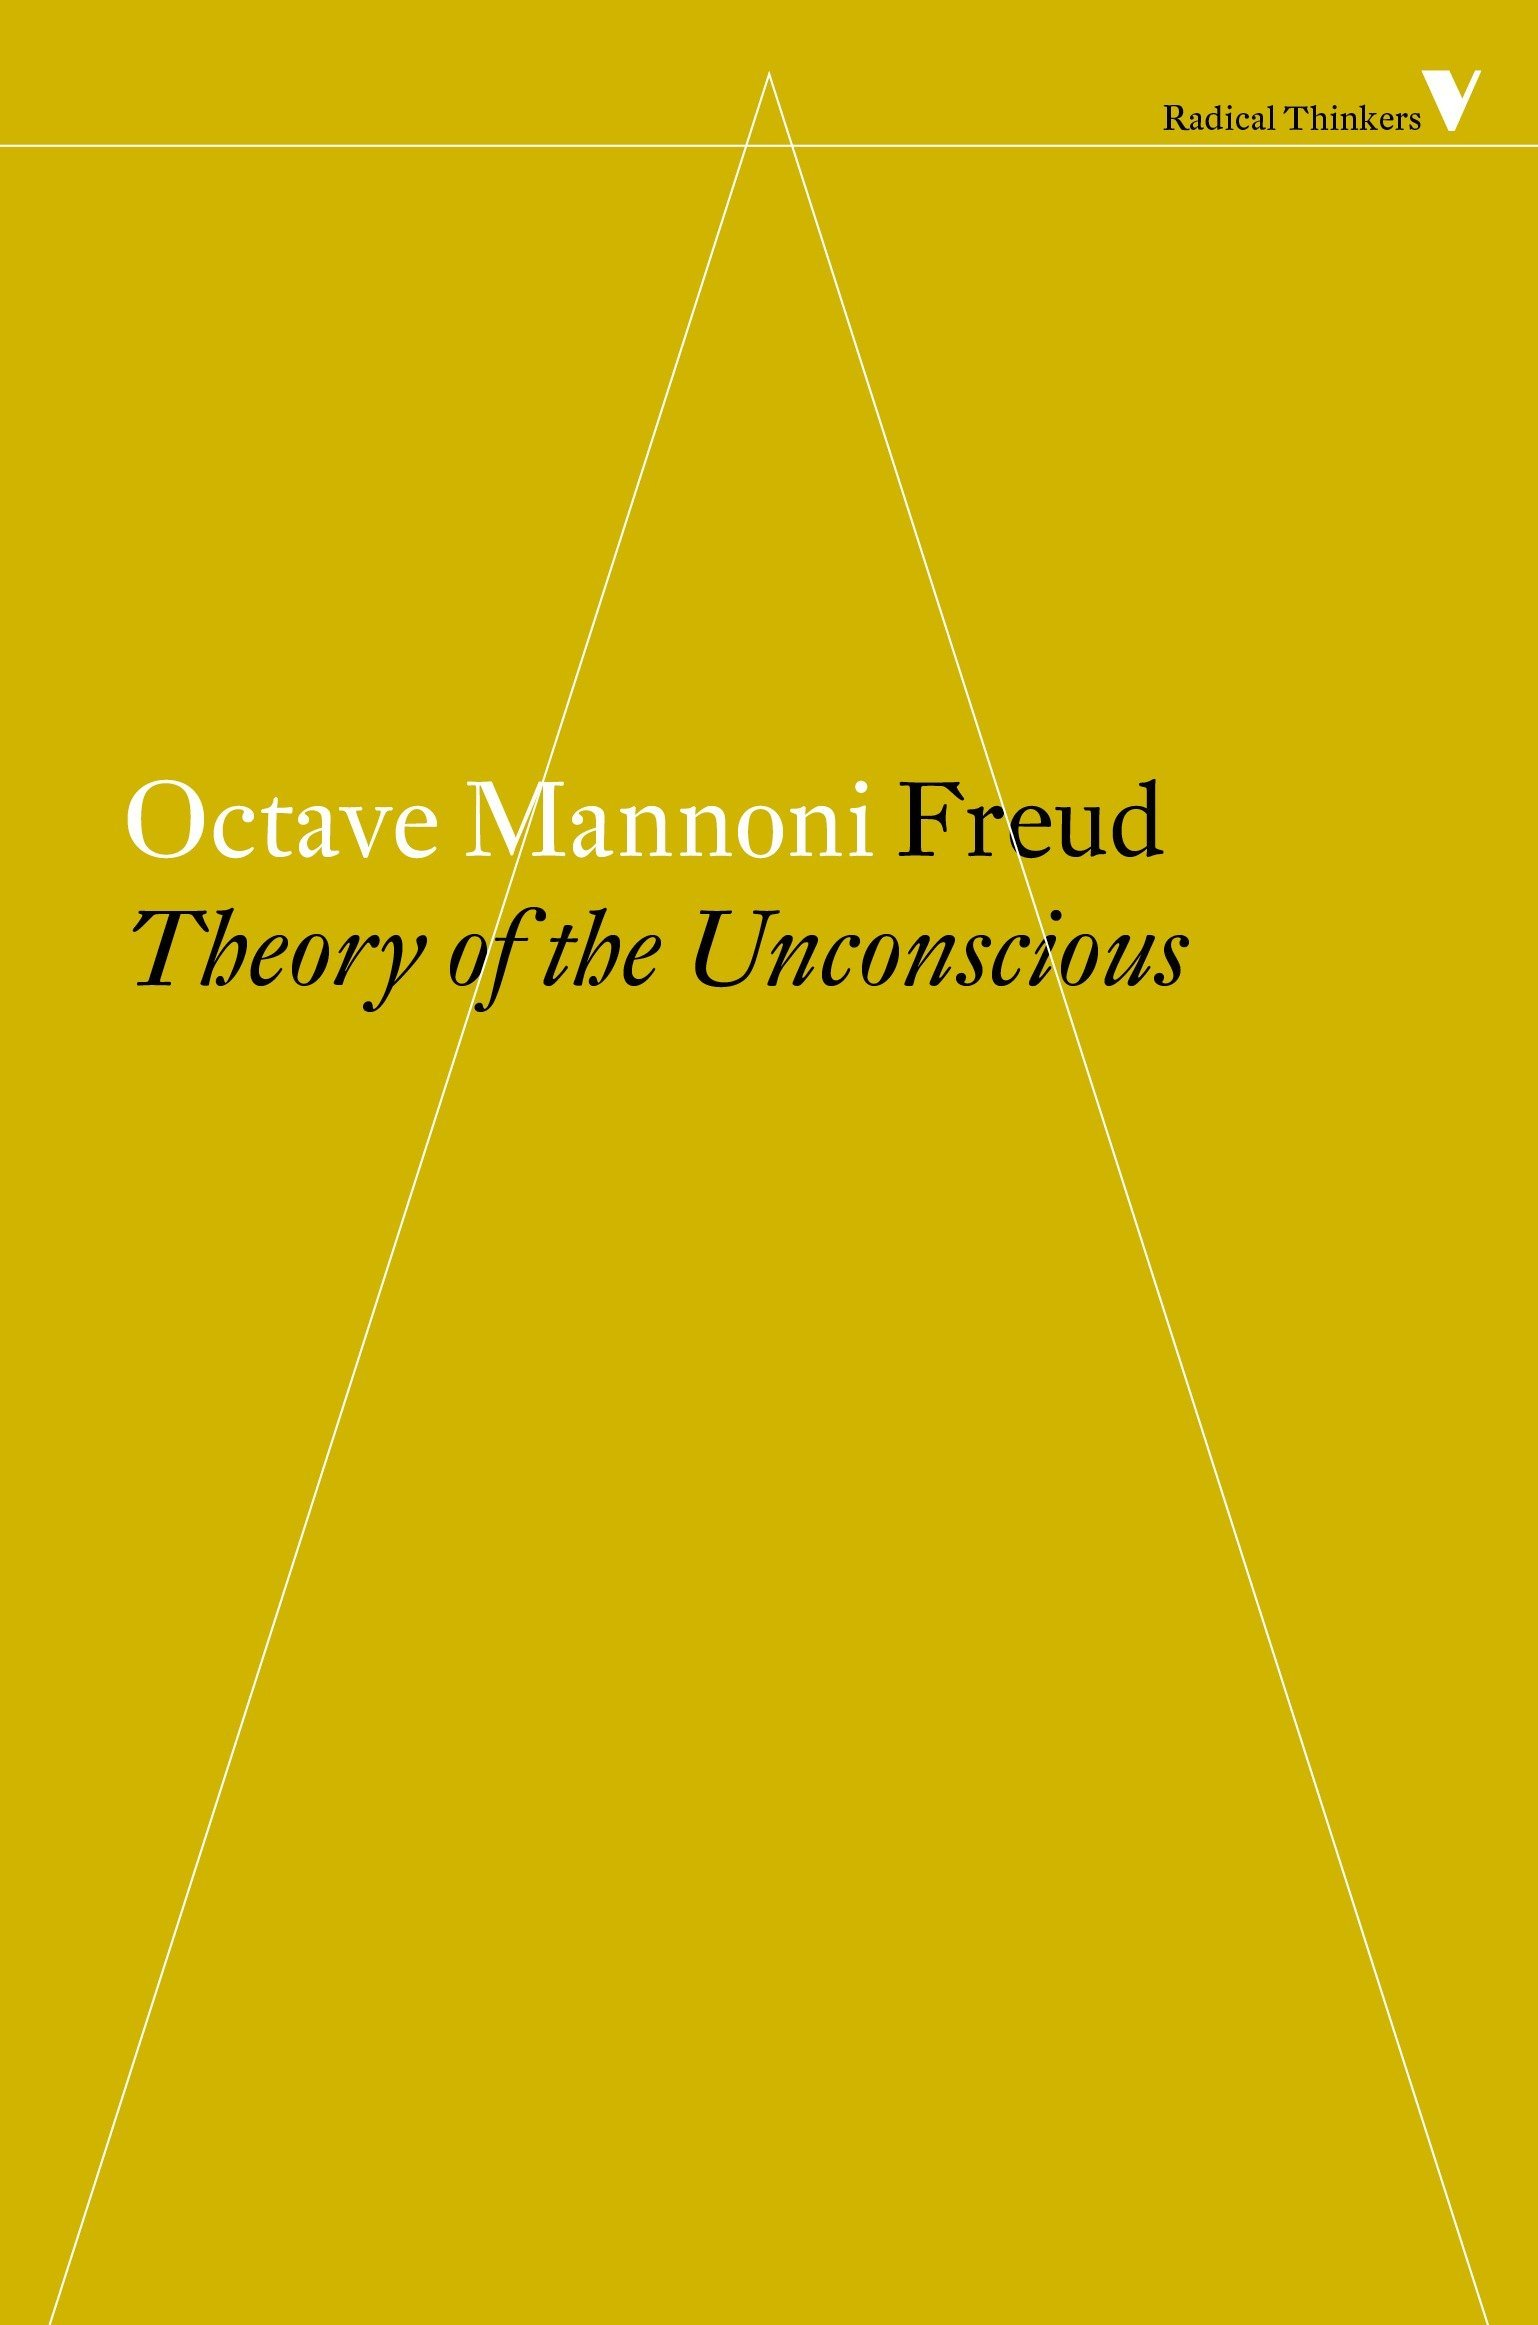 Read Online Freud: The Theory of the Unconscious (Radical Thinkers) pdf epub